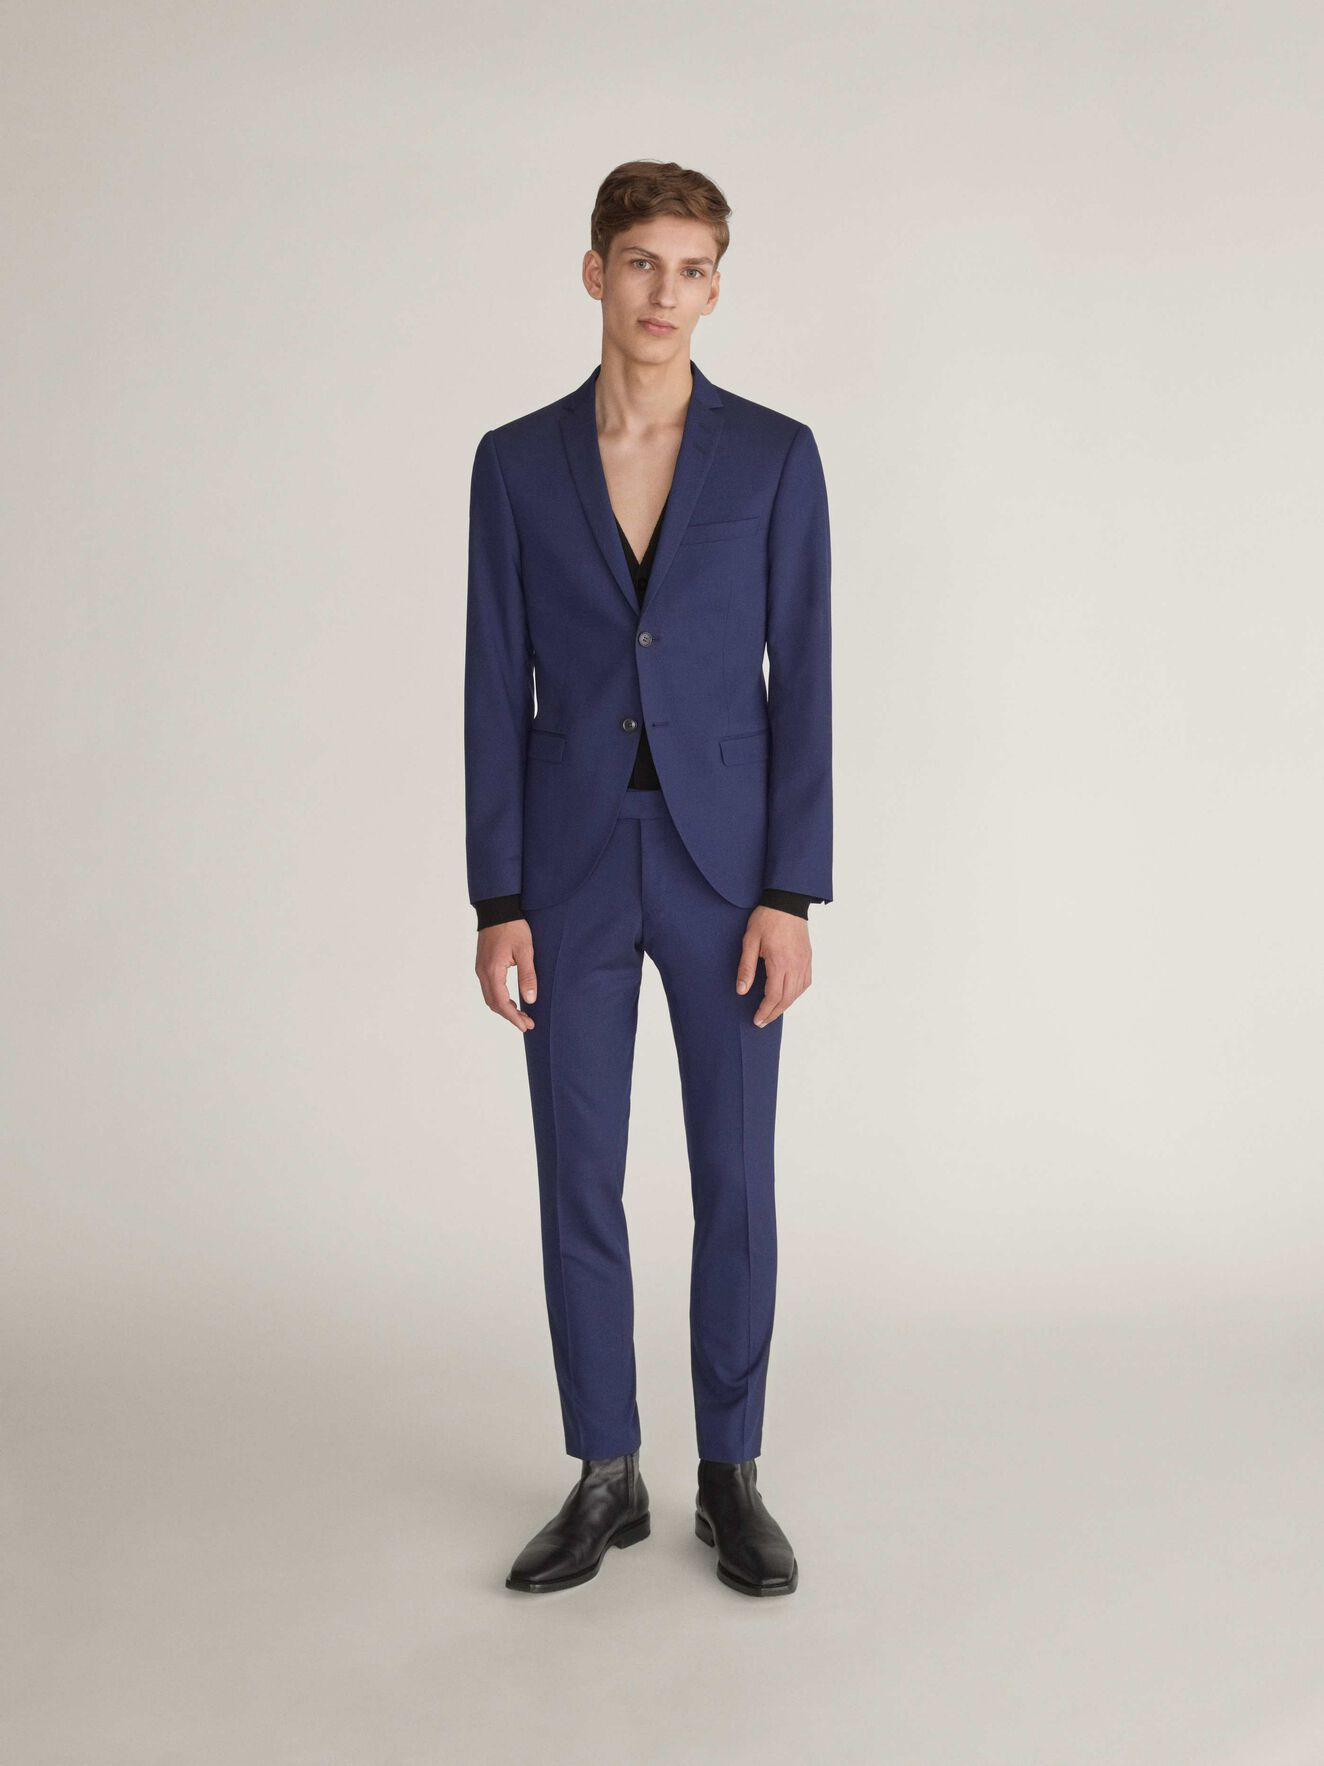 Jile Blazer in Royal Blue from Tiger of Sweden